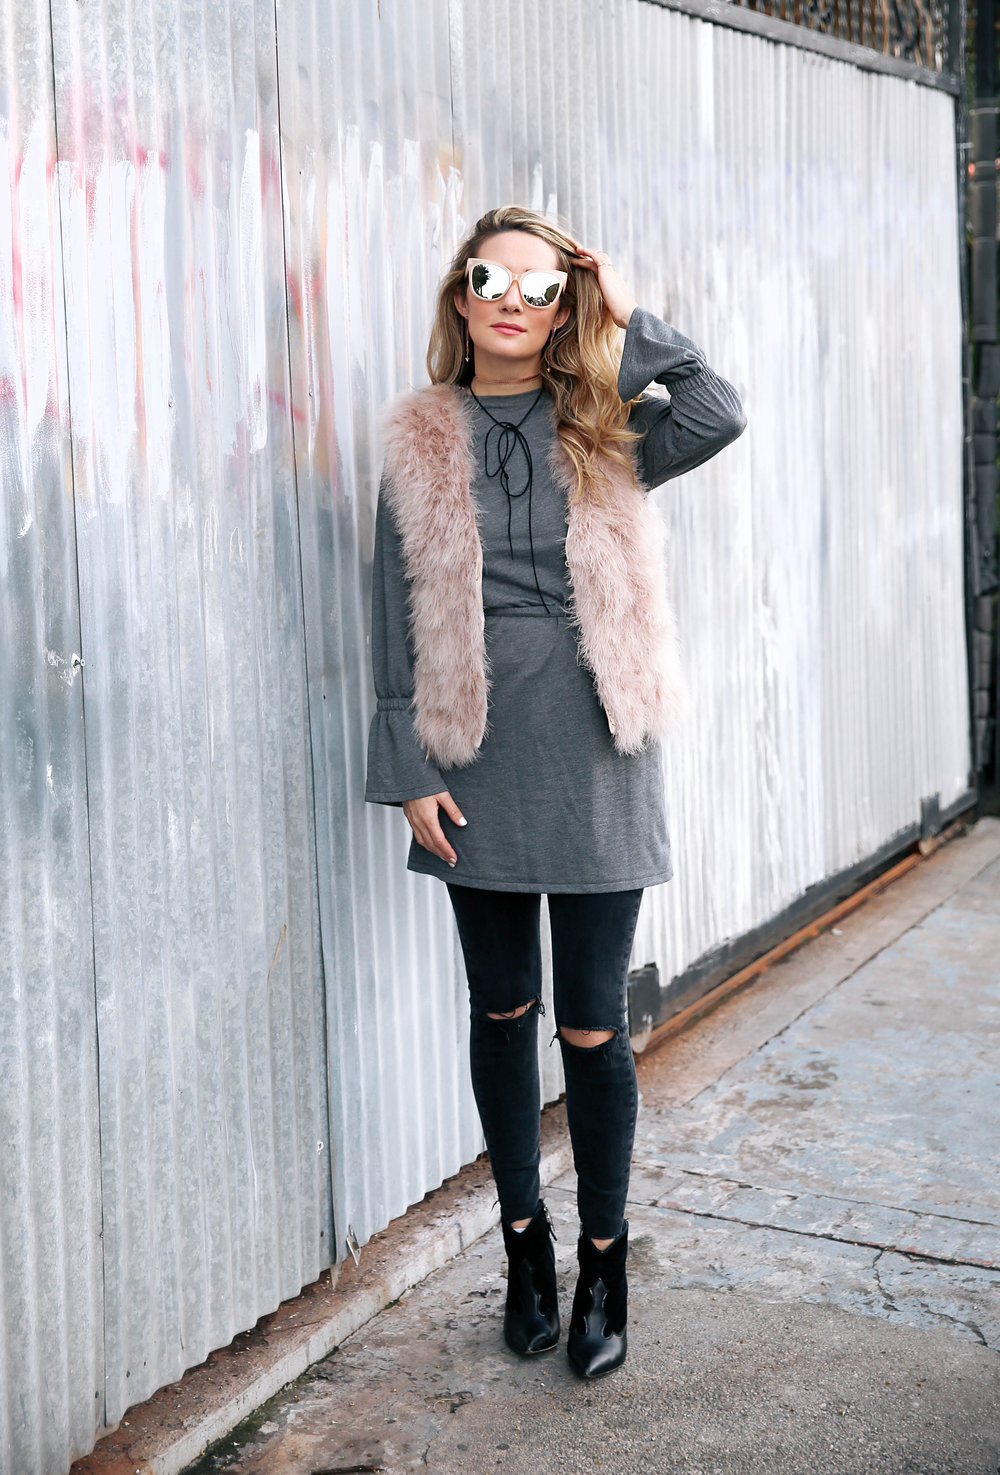 The Style Sauce fashion blog Motif Me jewelry collection Street Style pink fur vest